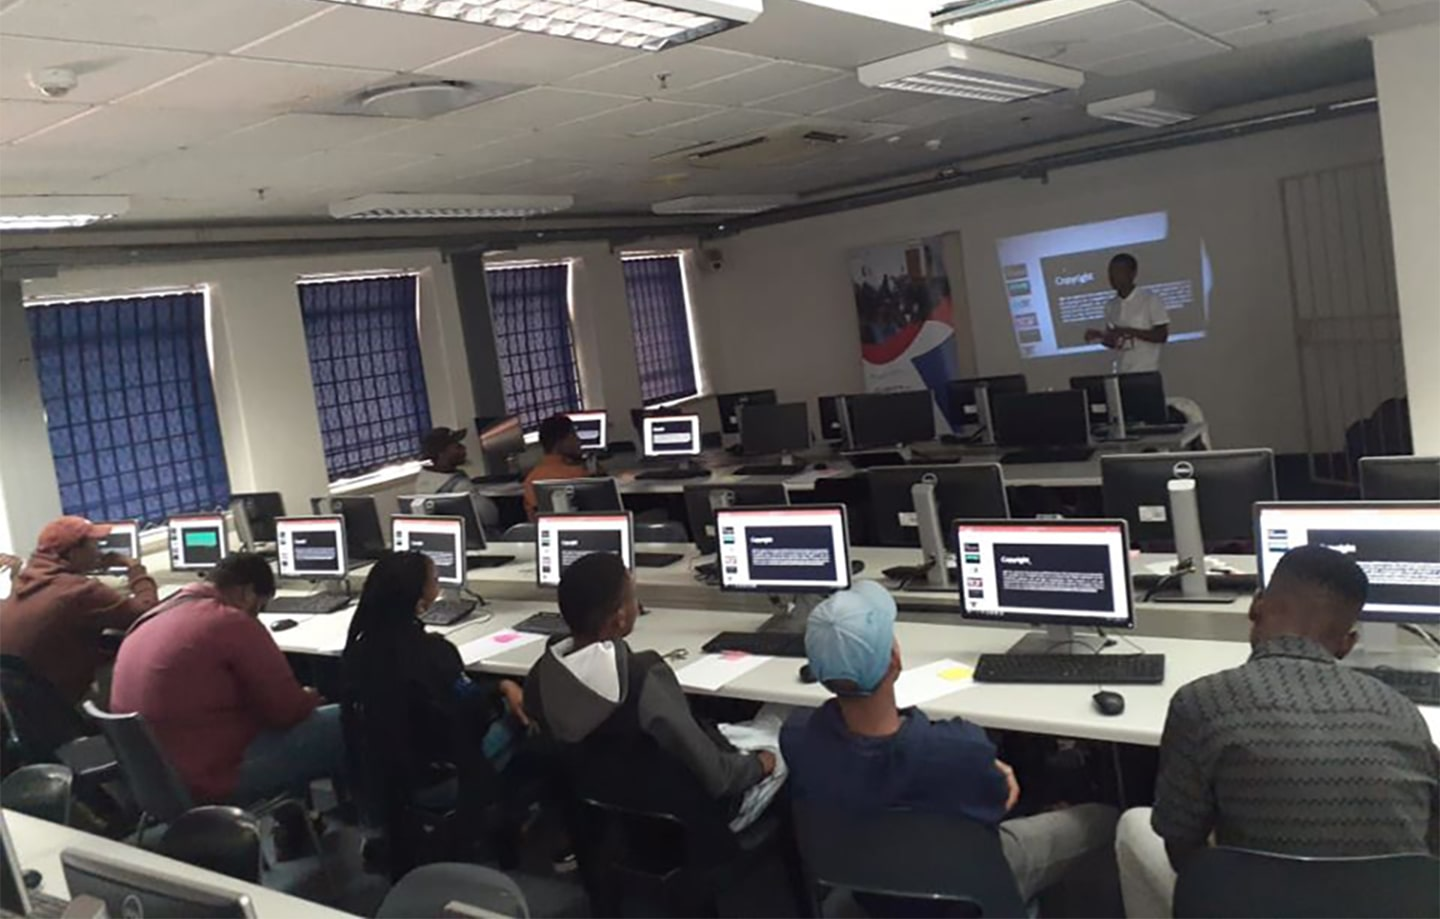 Diketso Setho self-taught developer and chairman of Ghetto Heroes Tech Innovation, teaches coding to South African youth from disadvantaged communities.